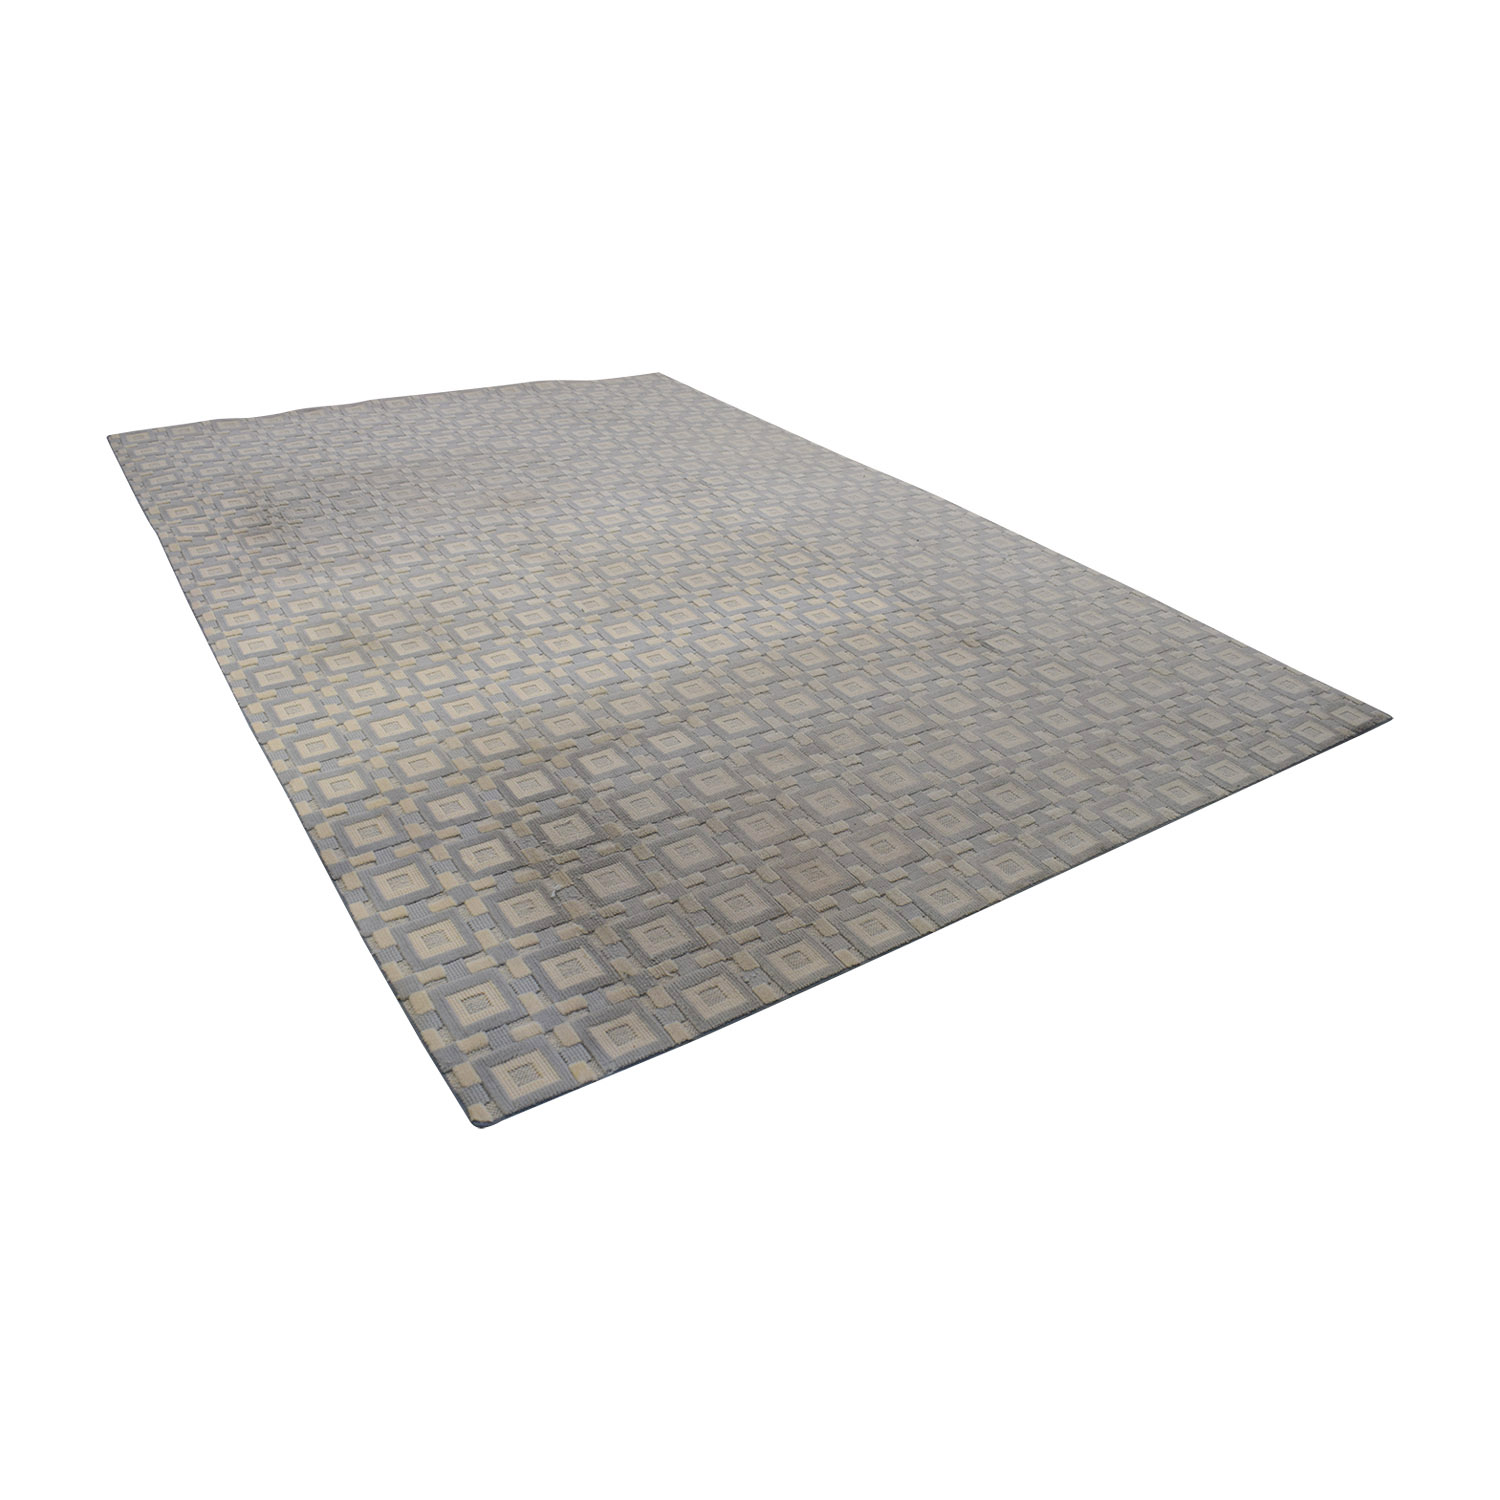 buy Gray and White 9x12 Natural Fiber Rug